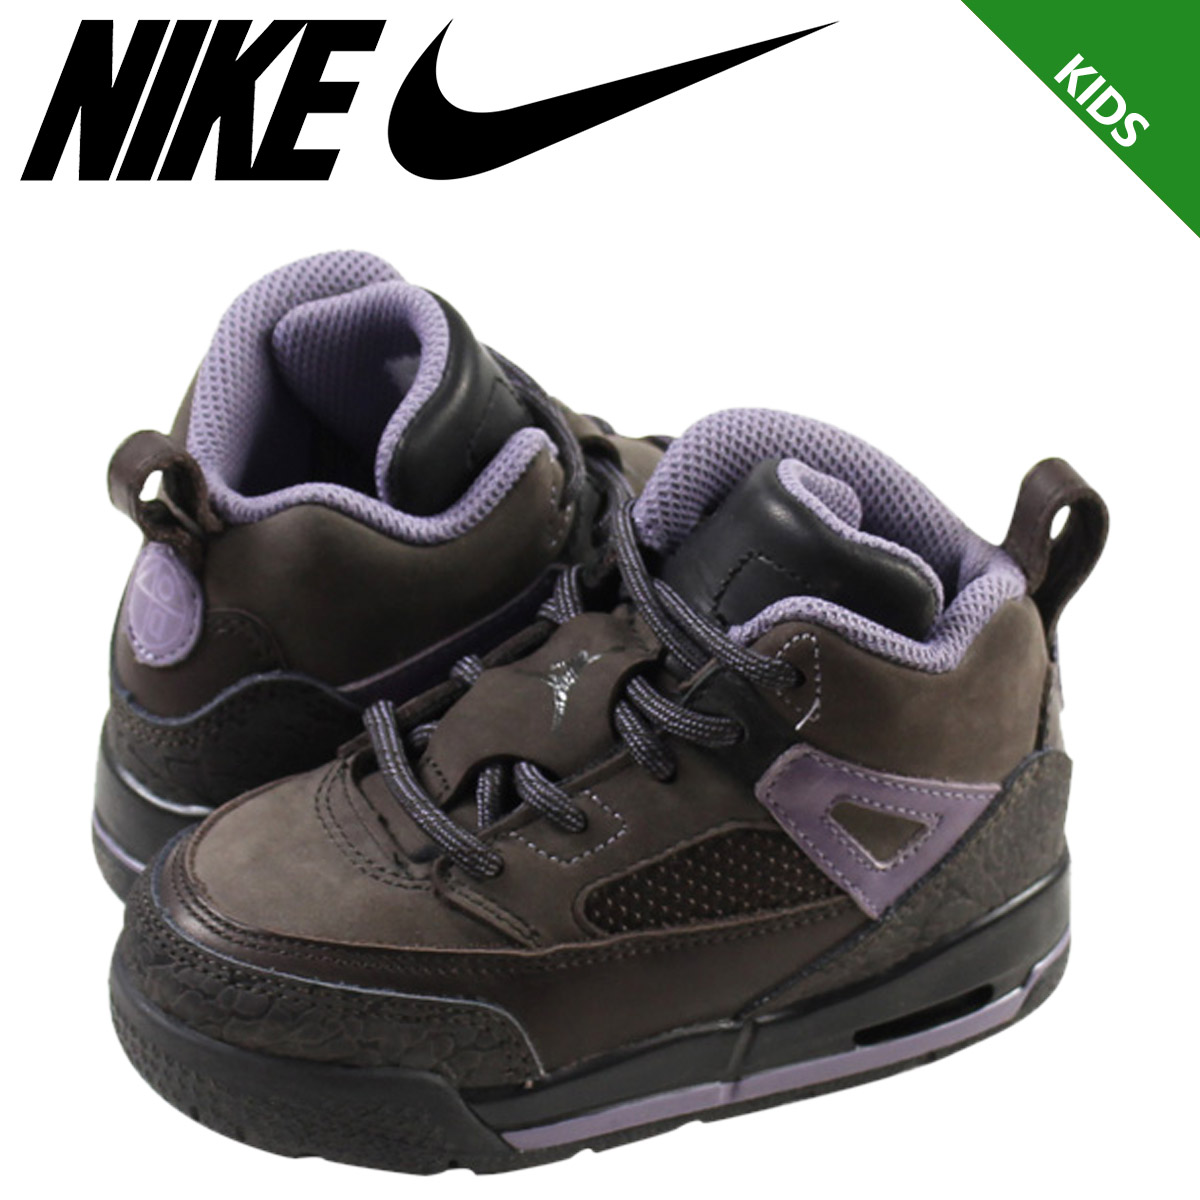 info for e9f96 c5795 Nike NIKE baby kids AIR JORDAN WINTERIZED SPIZIKE TD sneakers Air Jordan  spisiak toddler leather junior kids BABY TODDLER 414841-201 Brown  6   19  new ...